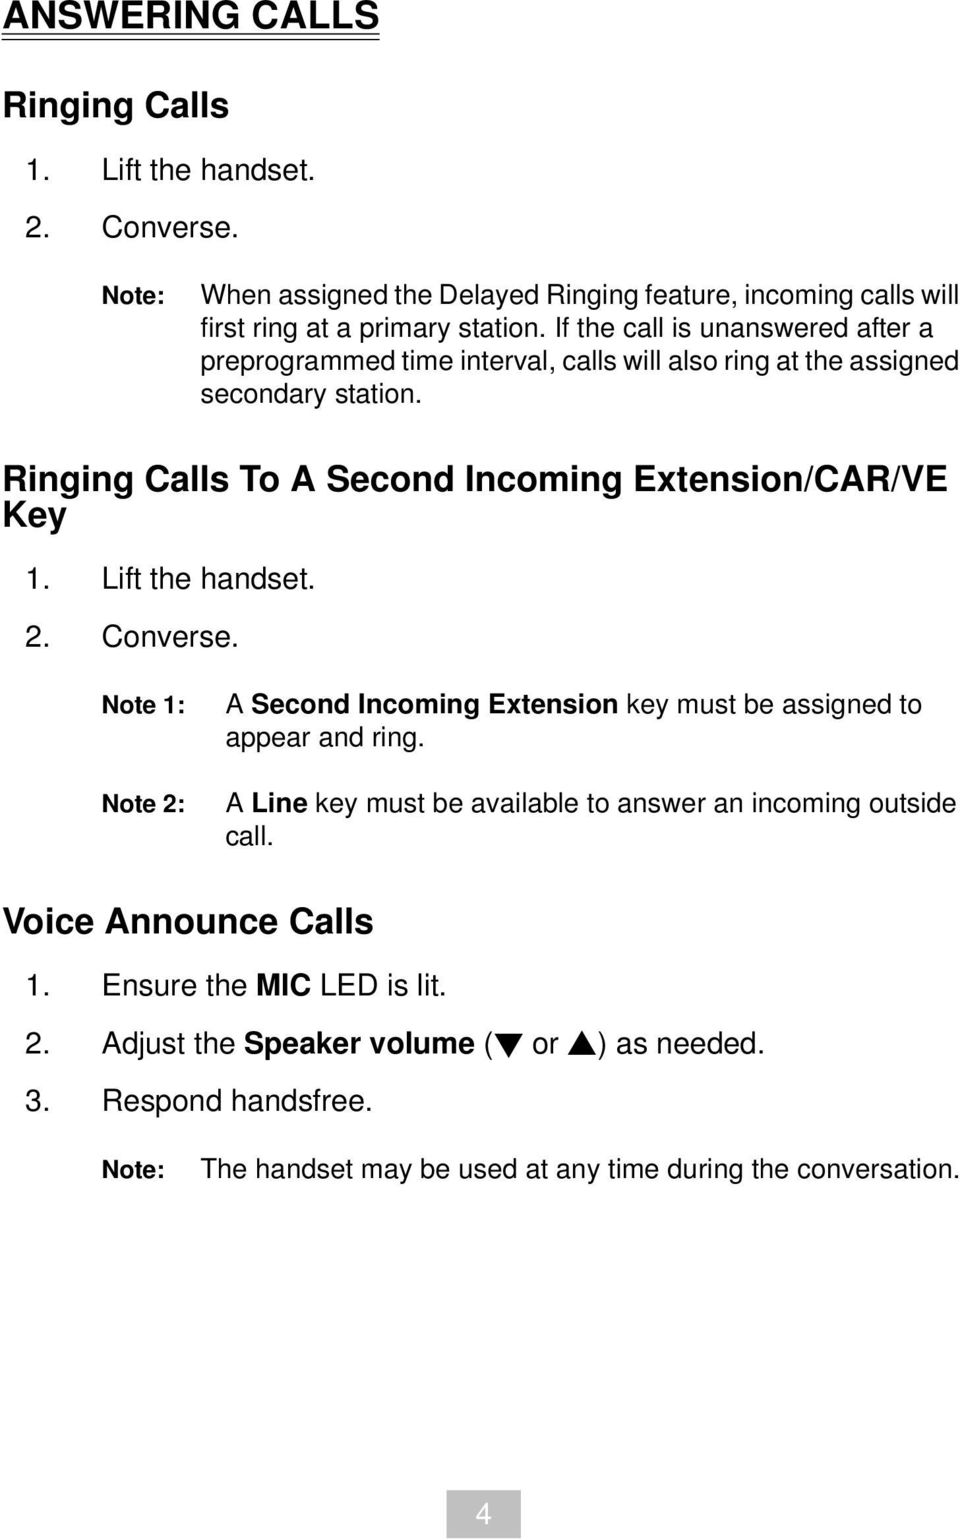 Ringing Calls To A Second Incoming Extension/CAR/VE Key 1. Lift the handset. 2. Converse. Note 1: Note 2: A Second Incoming Extension key must be assigned to appear and ring.